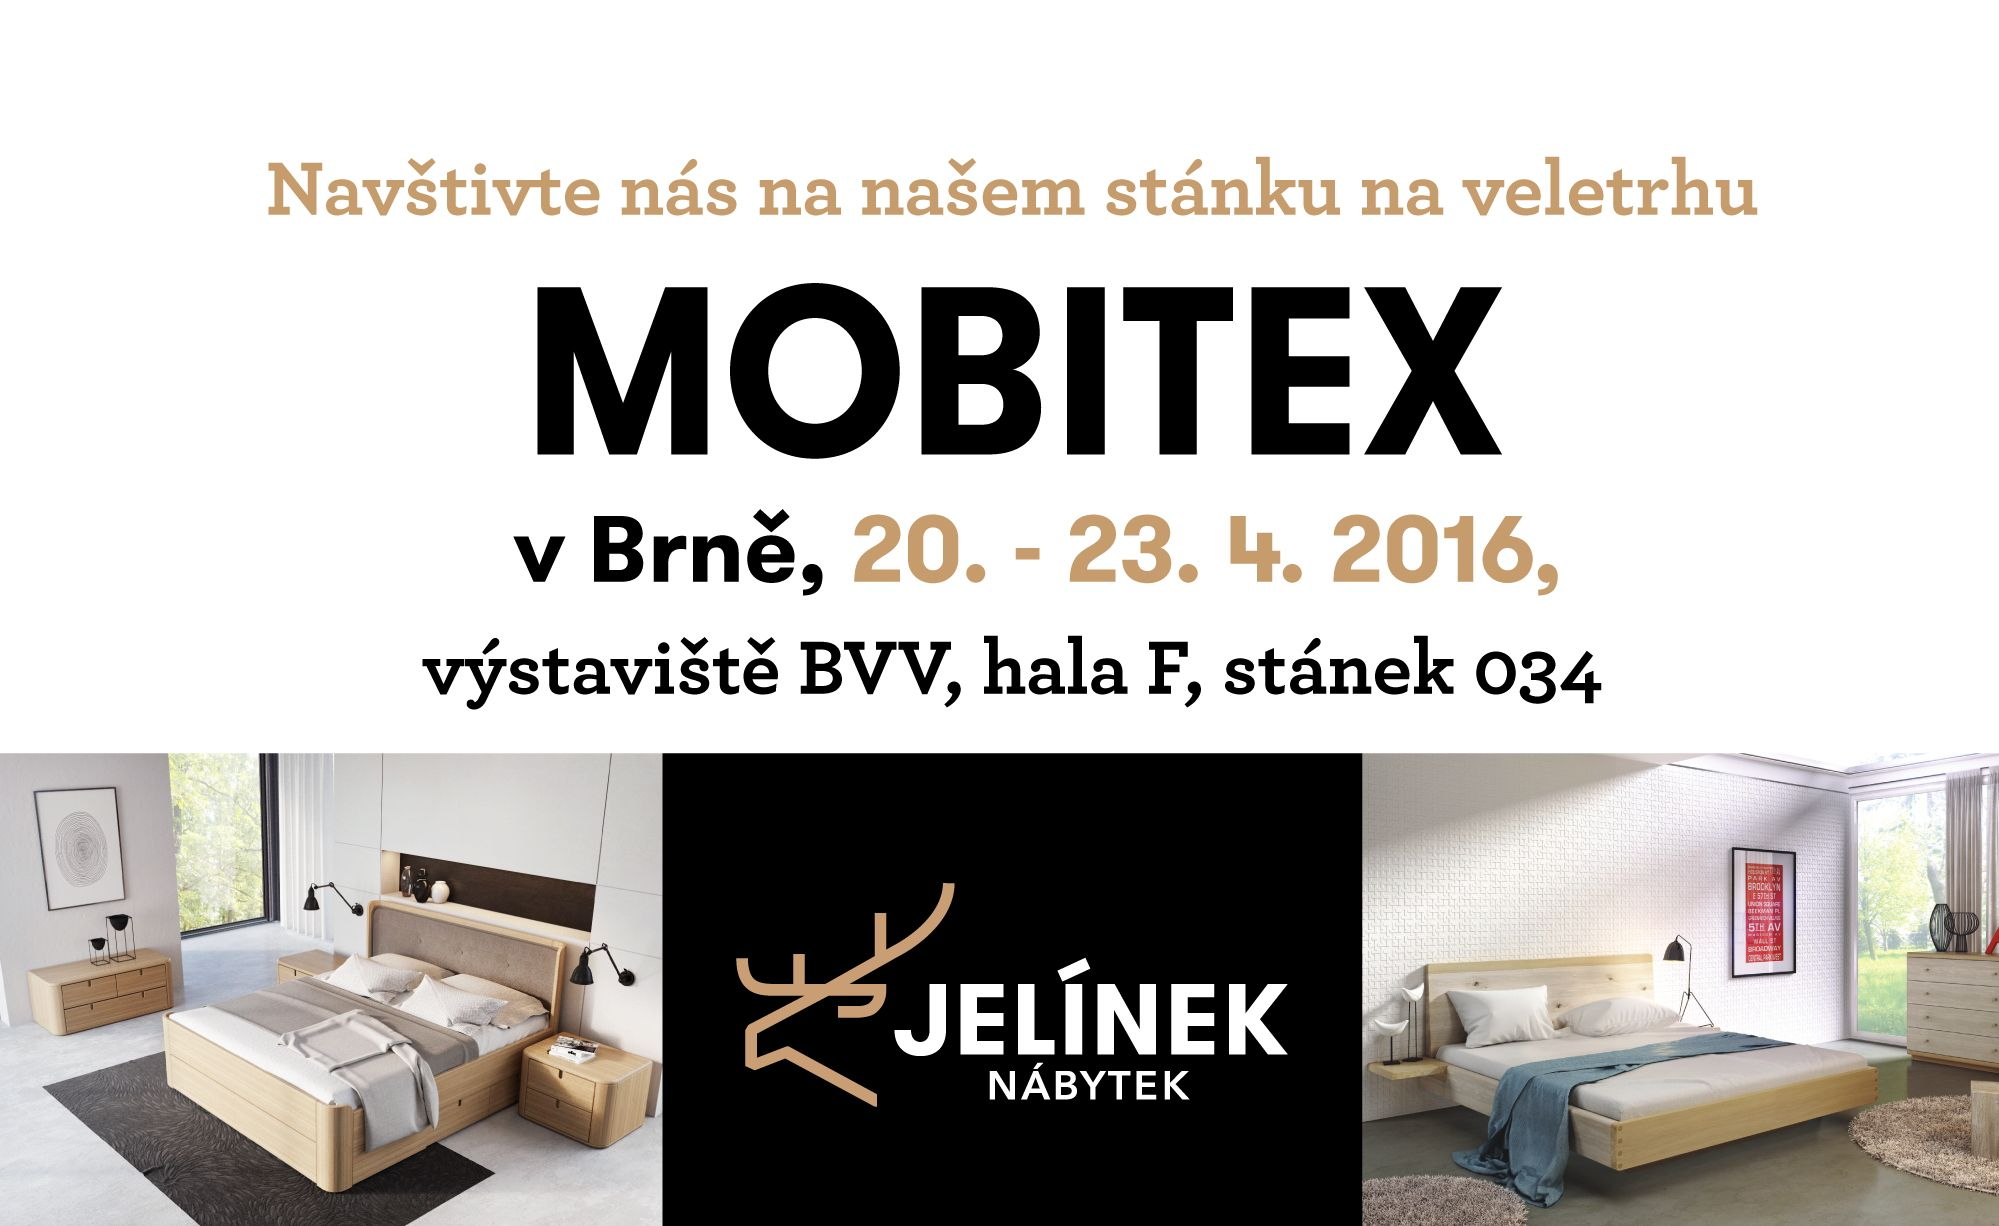 Visit us at MOBITEX in Brno